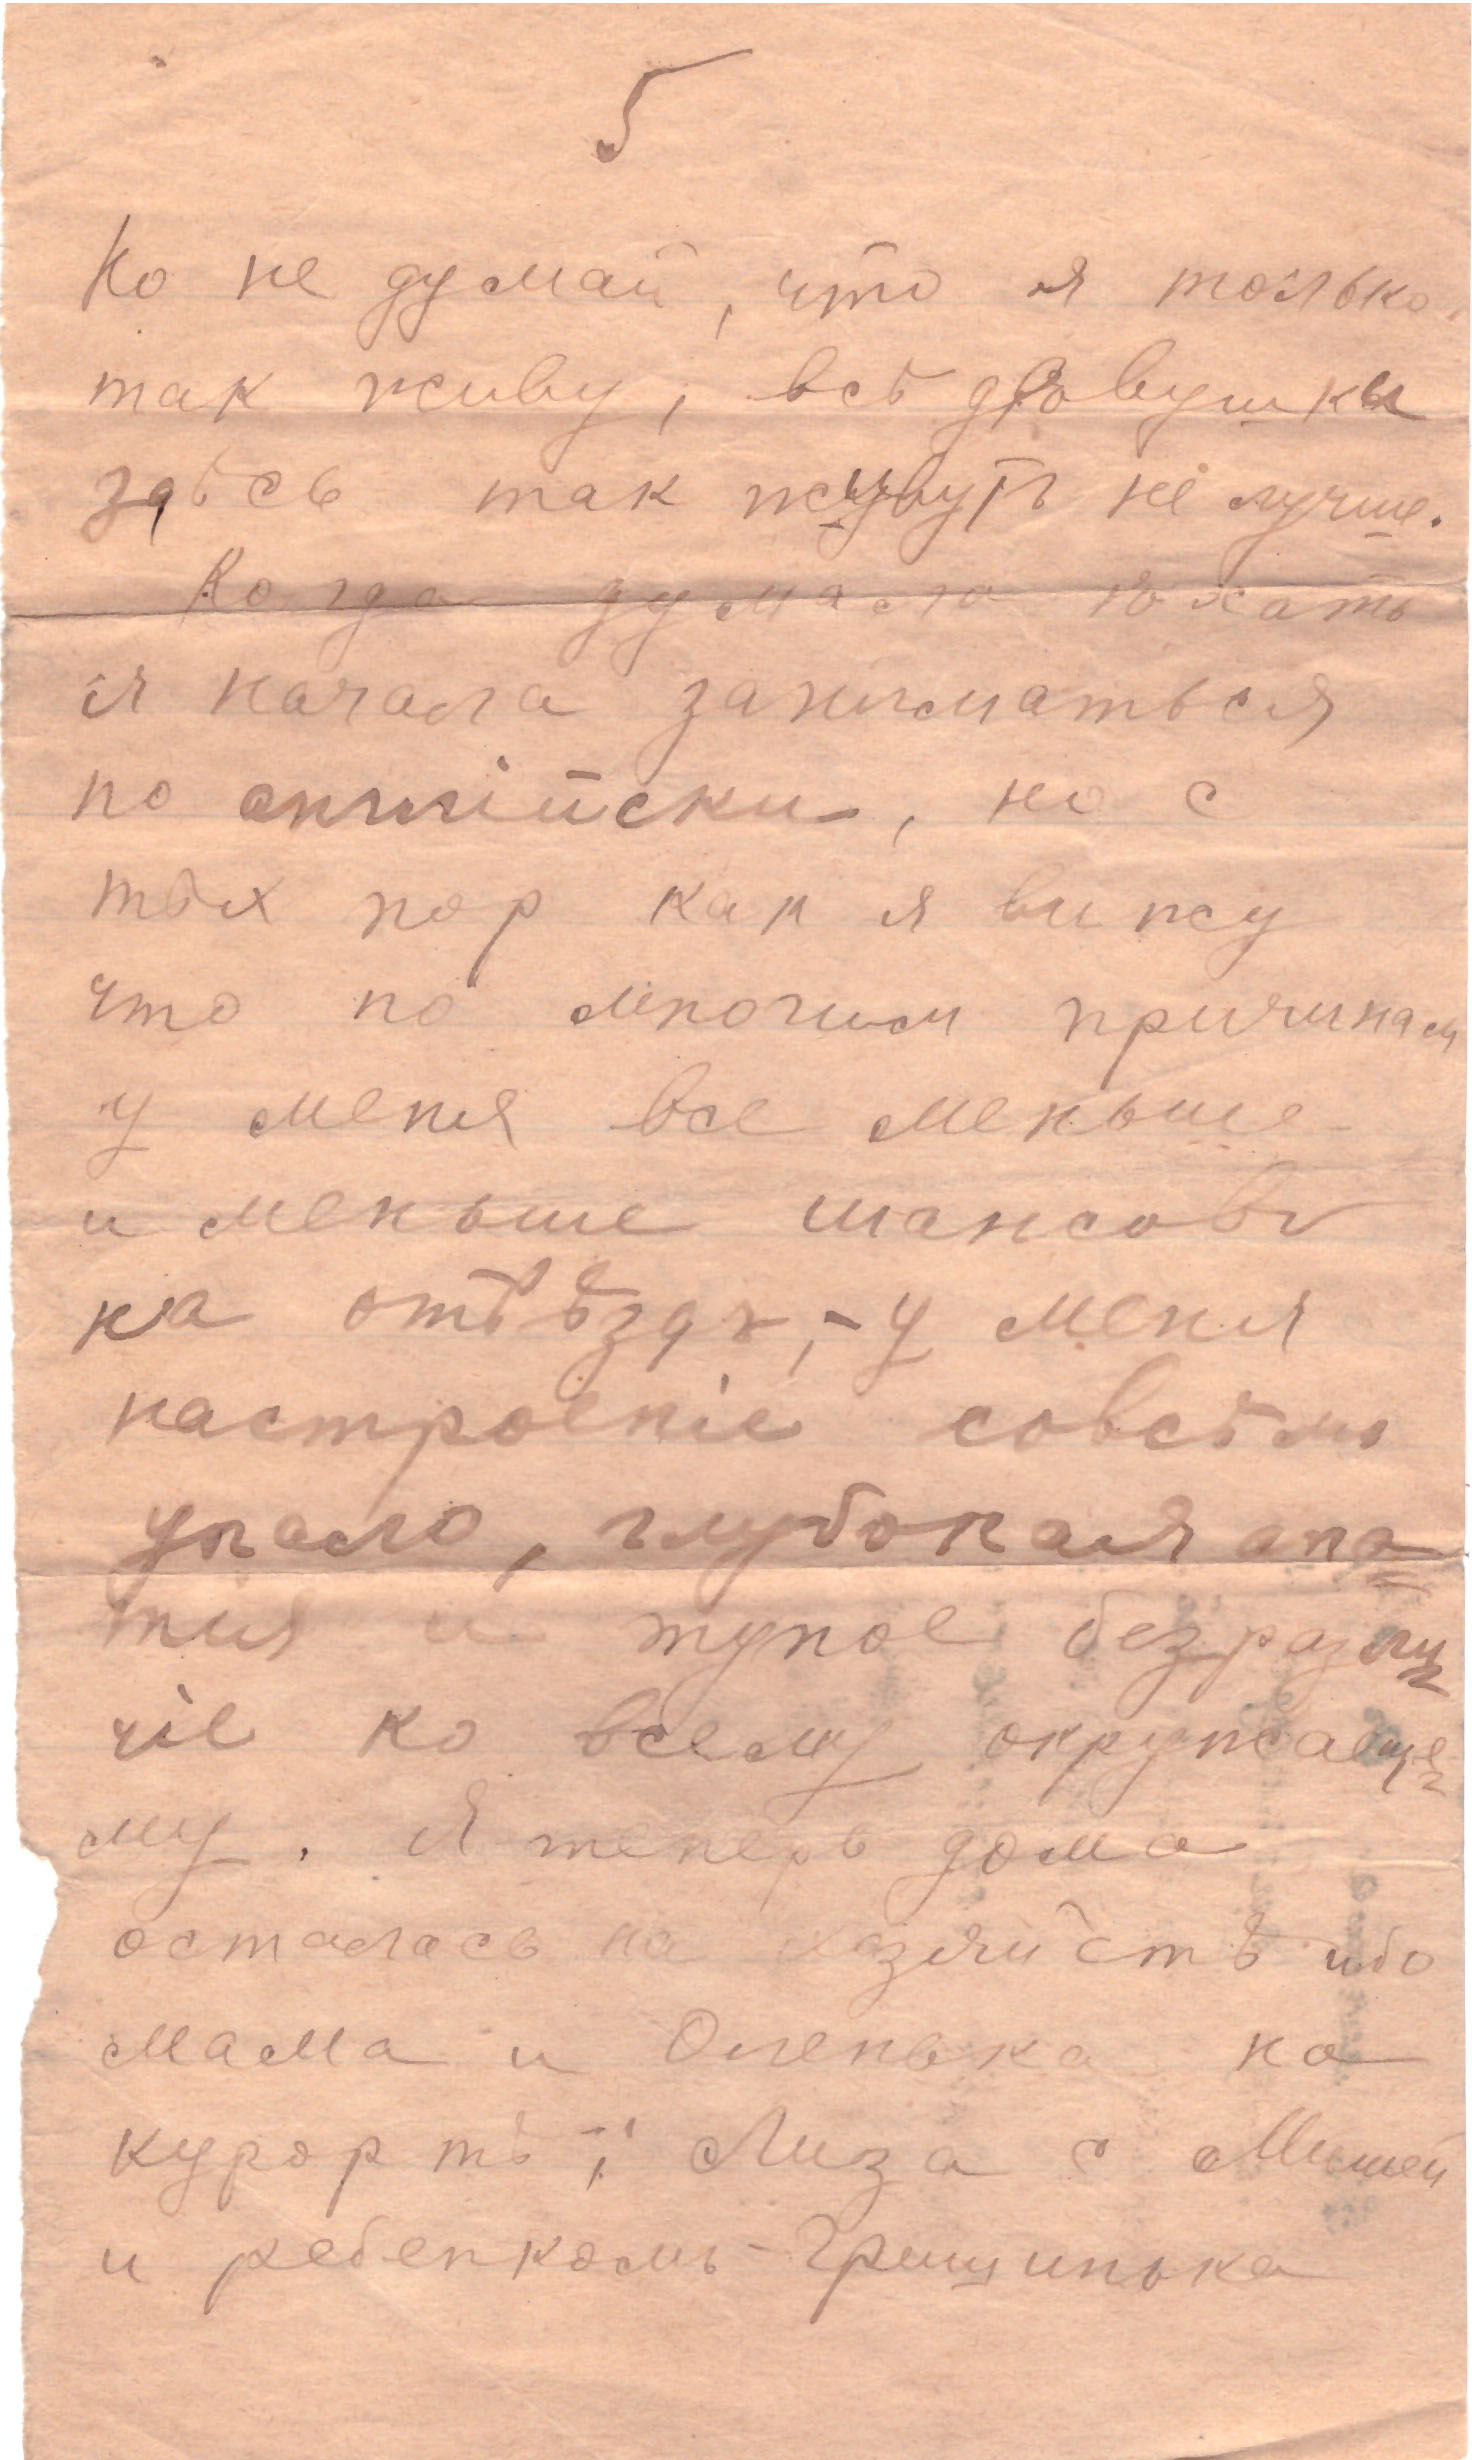 Letter to Poline from Tsillie July 5, 1920 p05